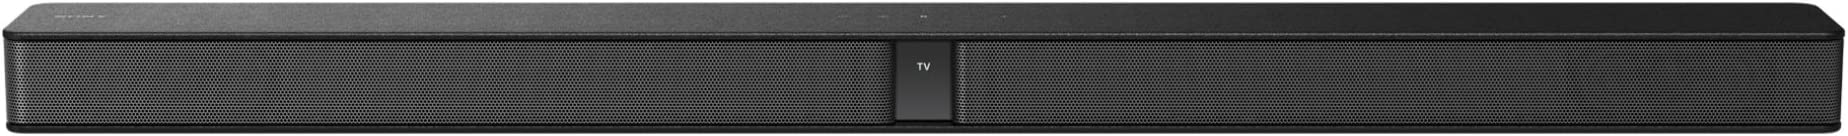 Sony HT-CT290/BM AU1 Soundbar Soundbar, Black